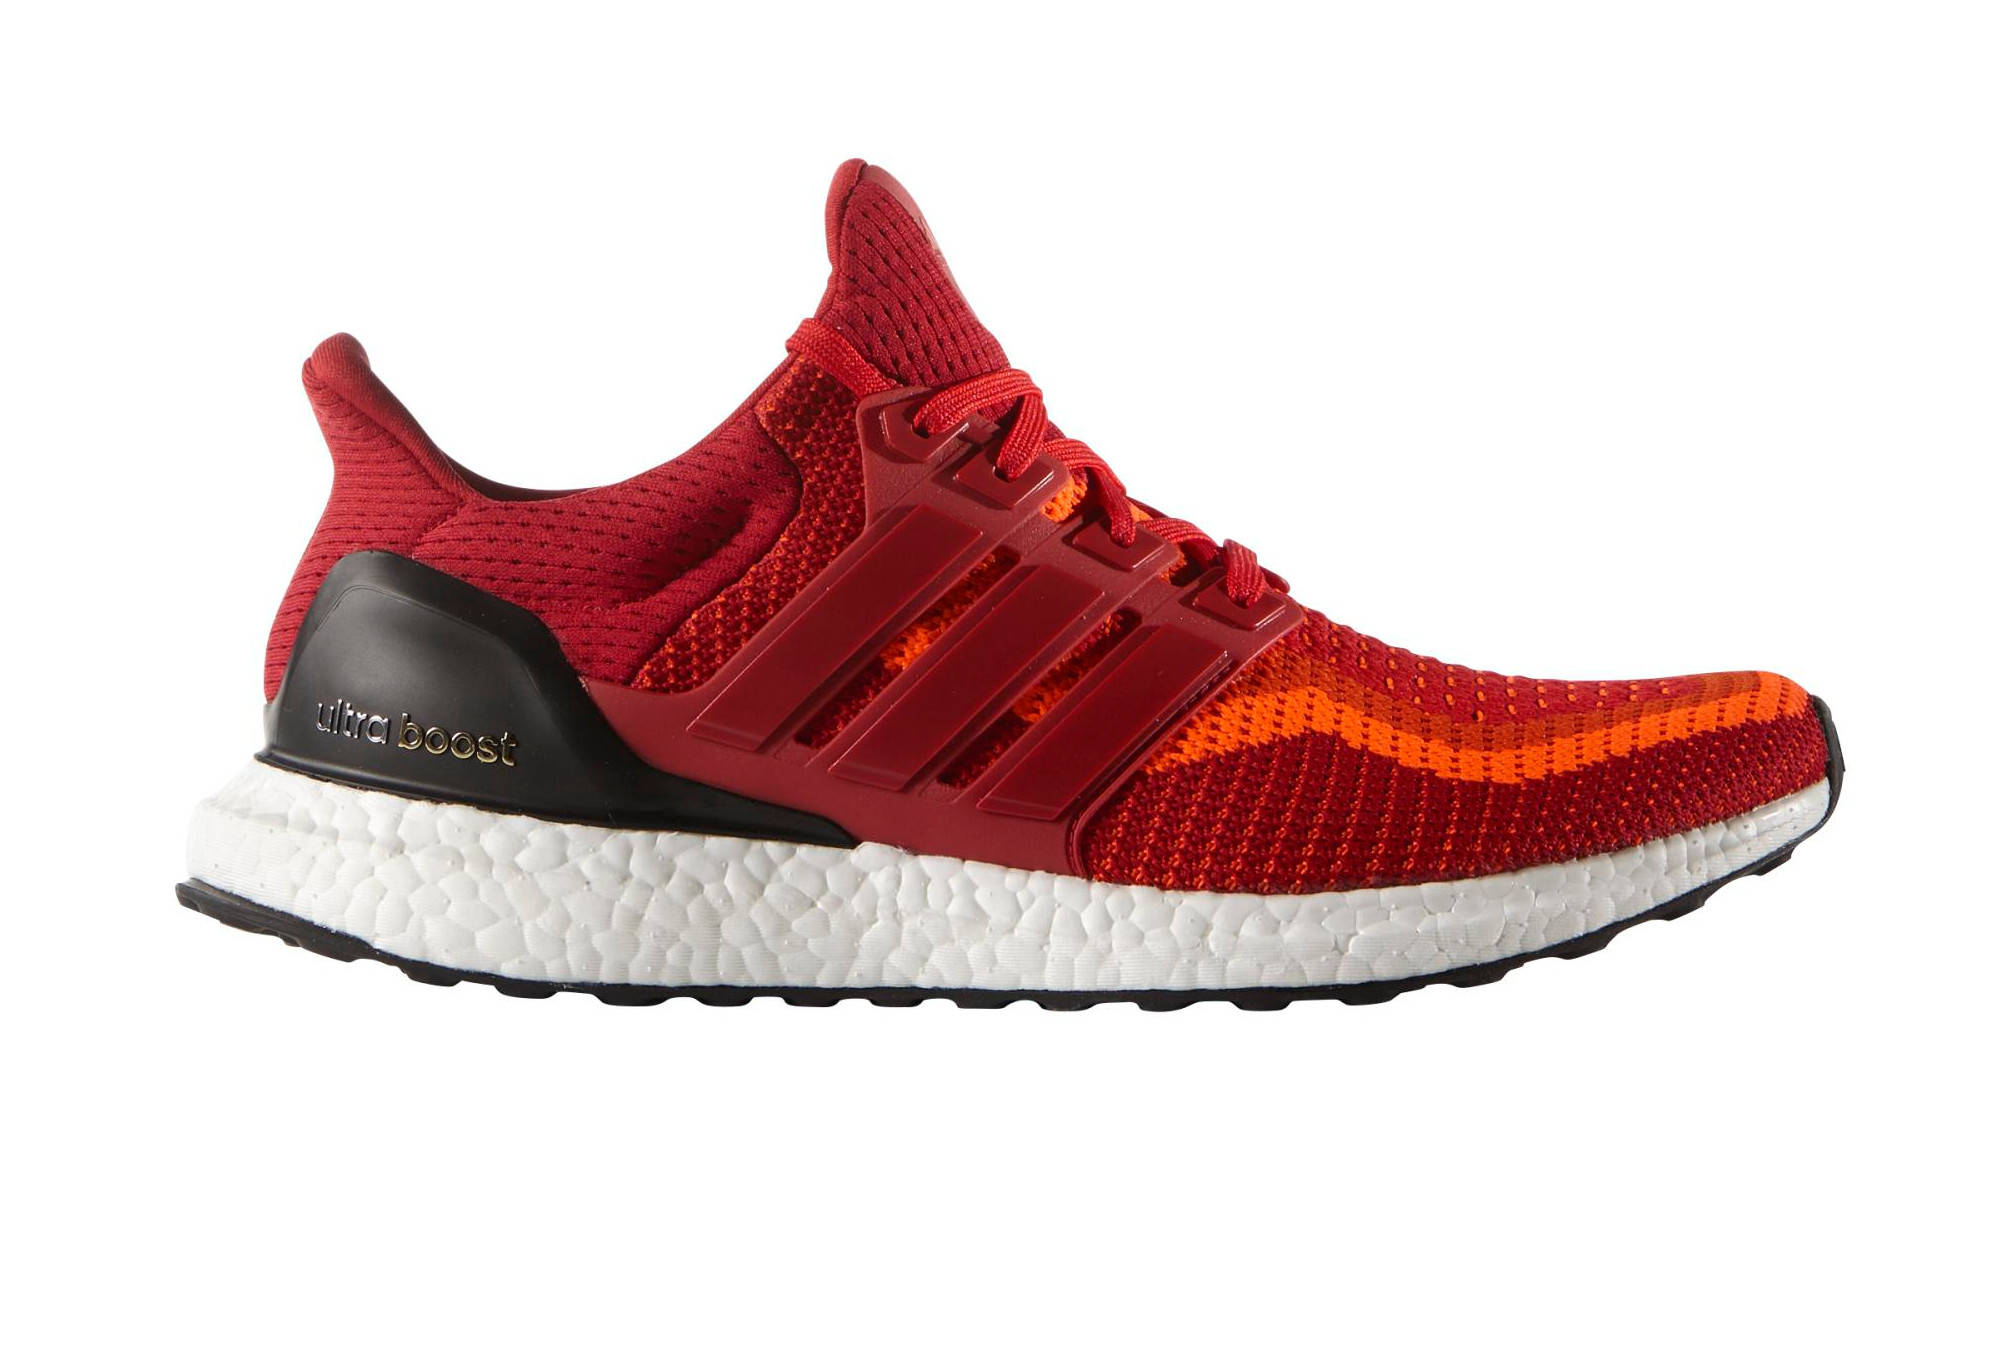 Adidas Ultra Boost zapatillas rojas